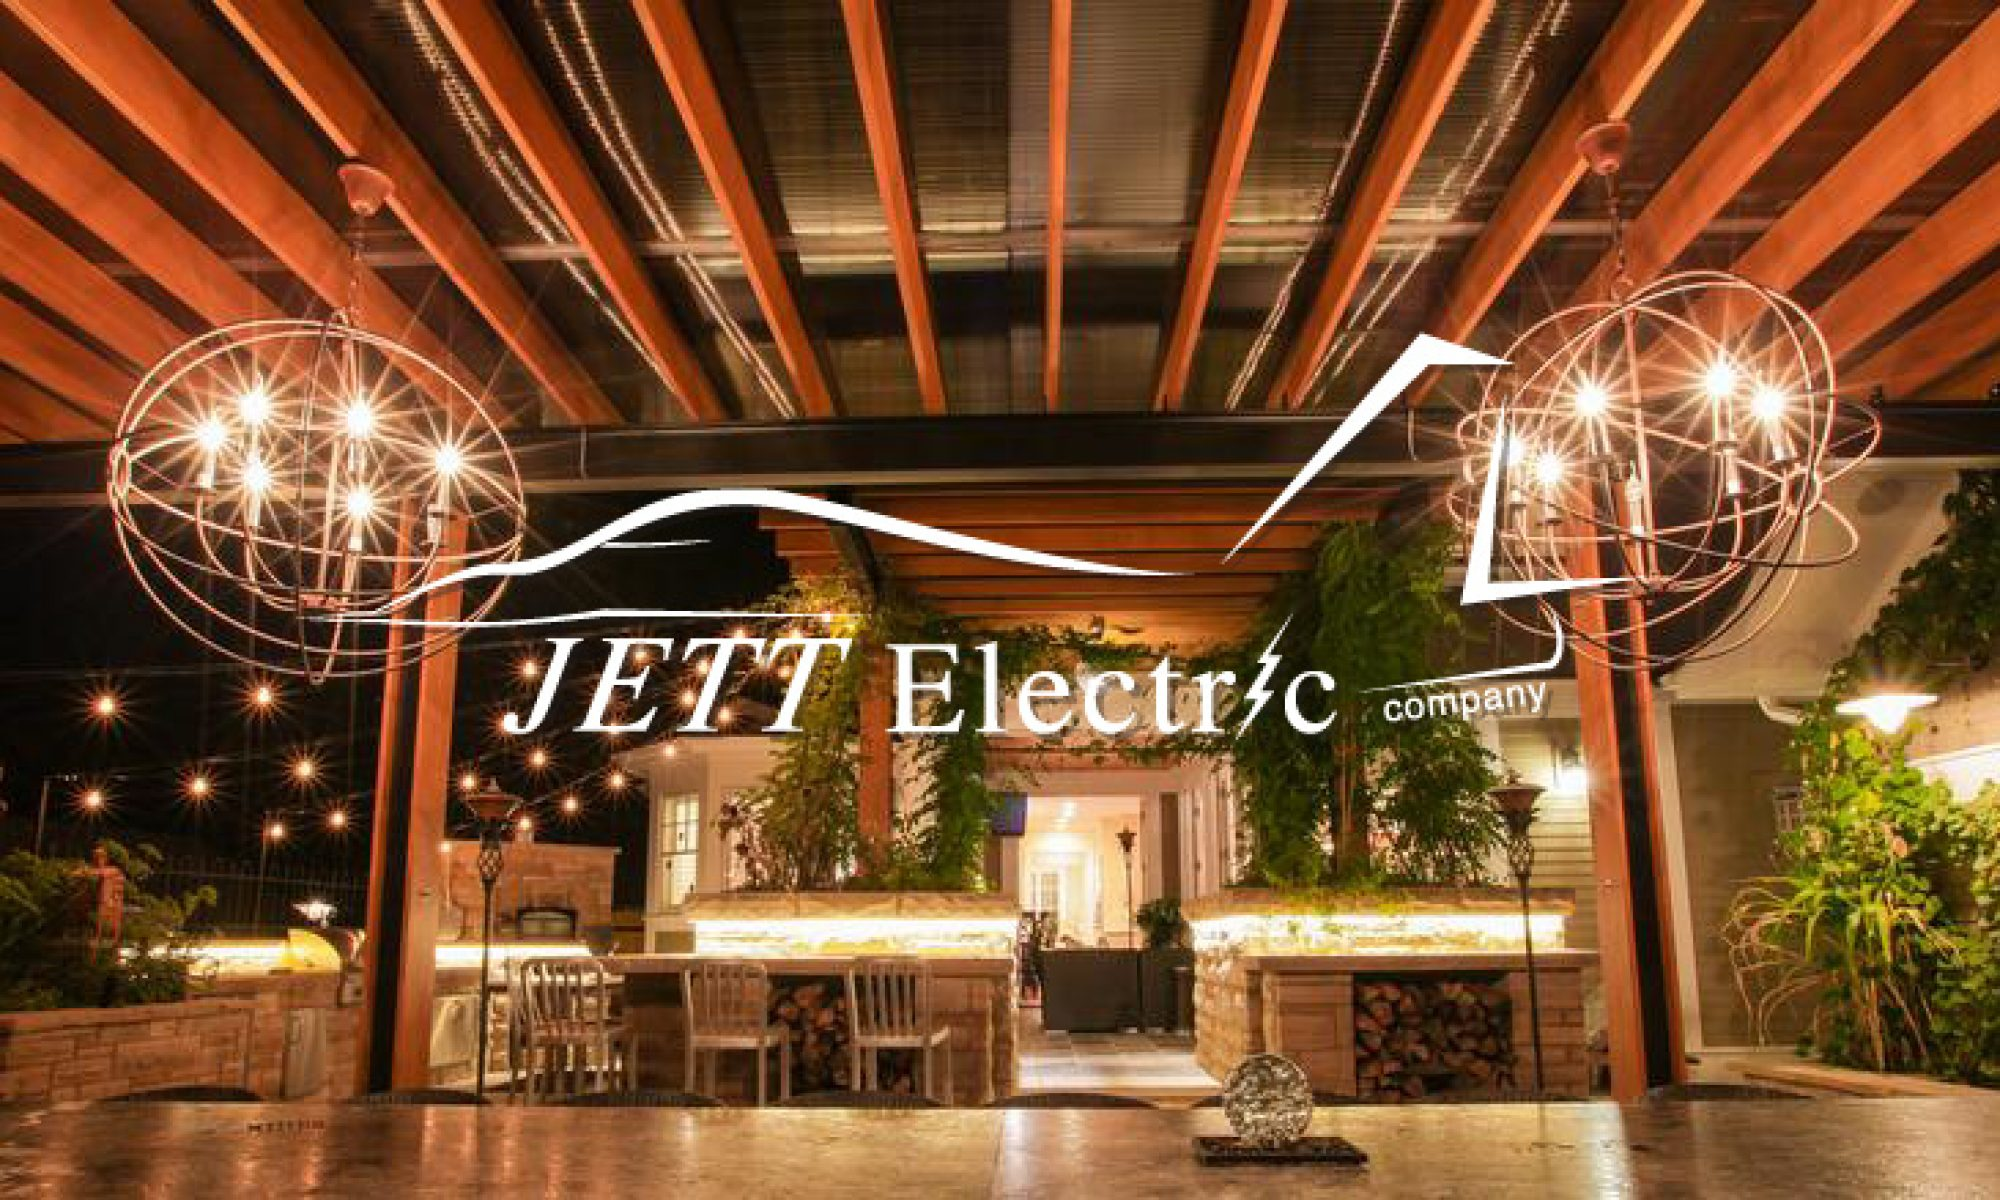 Jett Electric Company